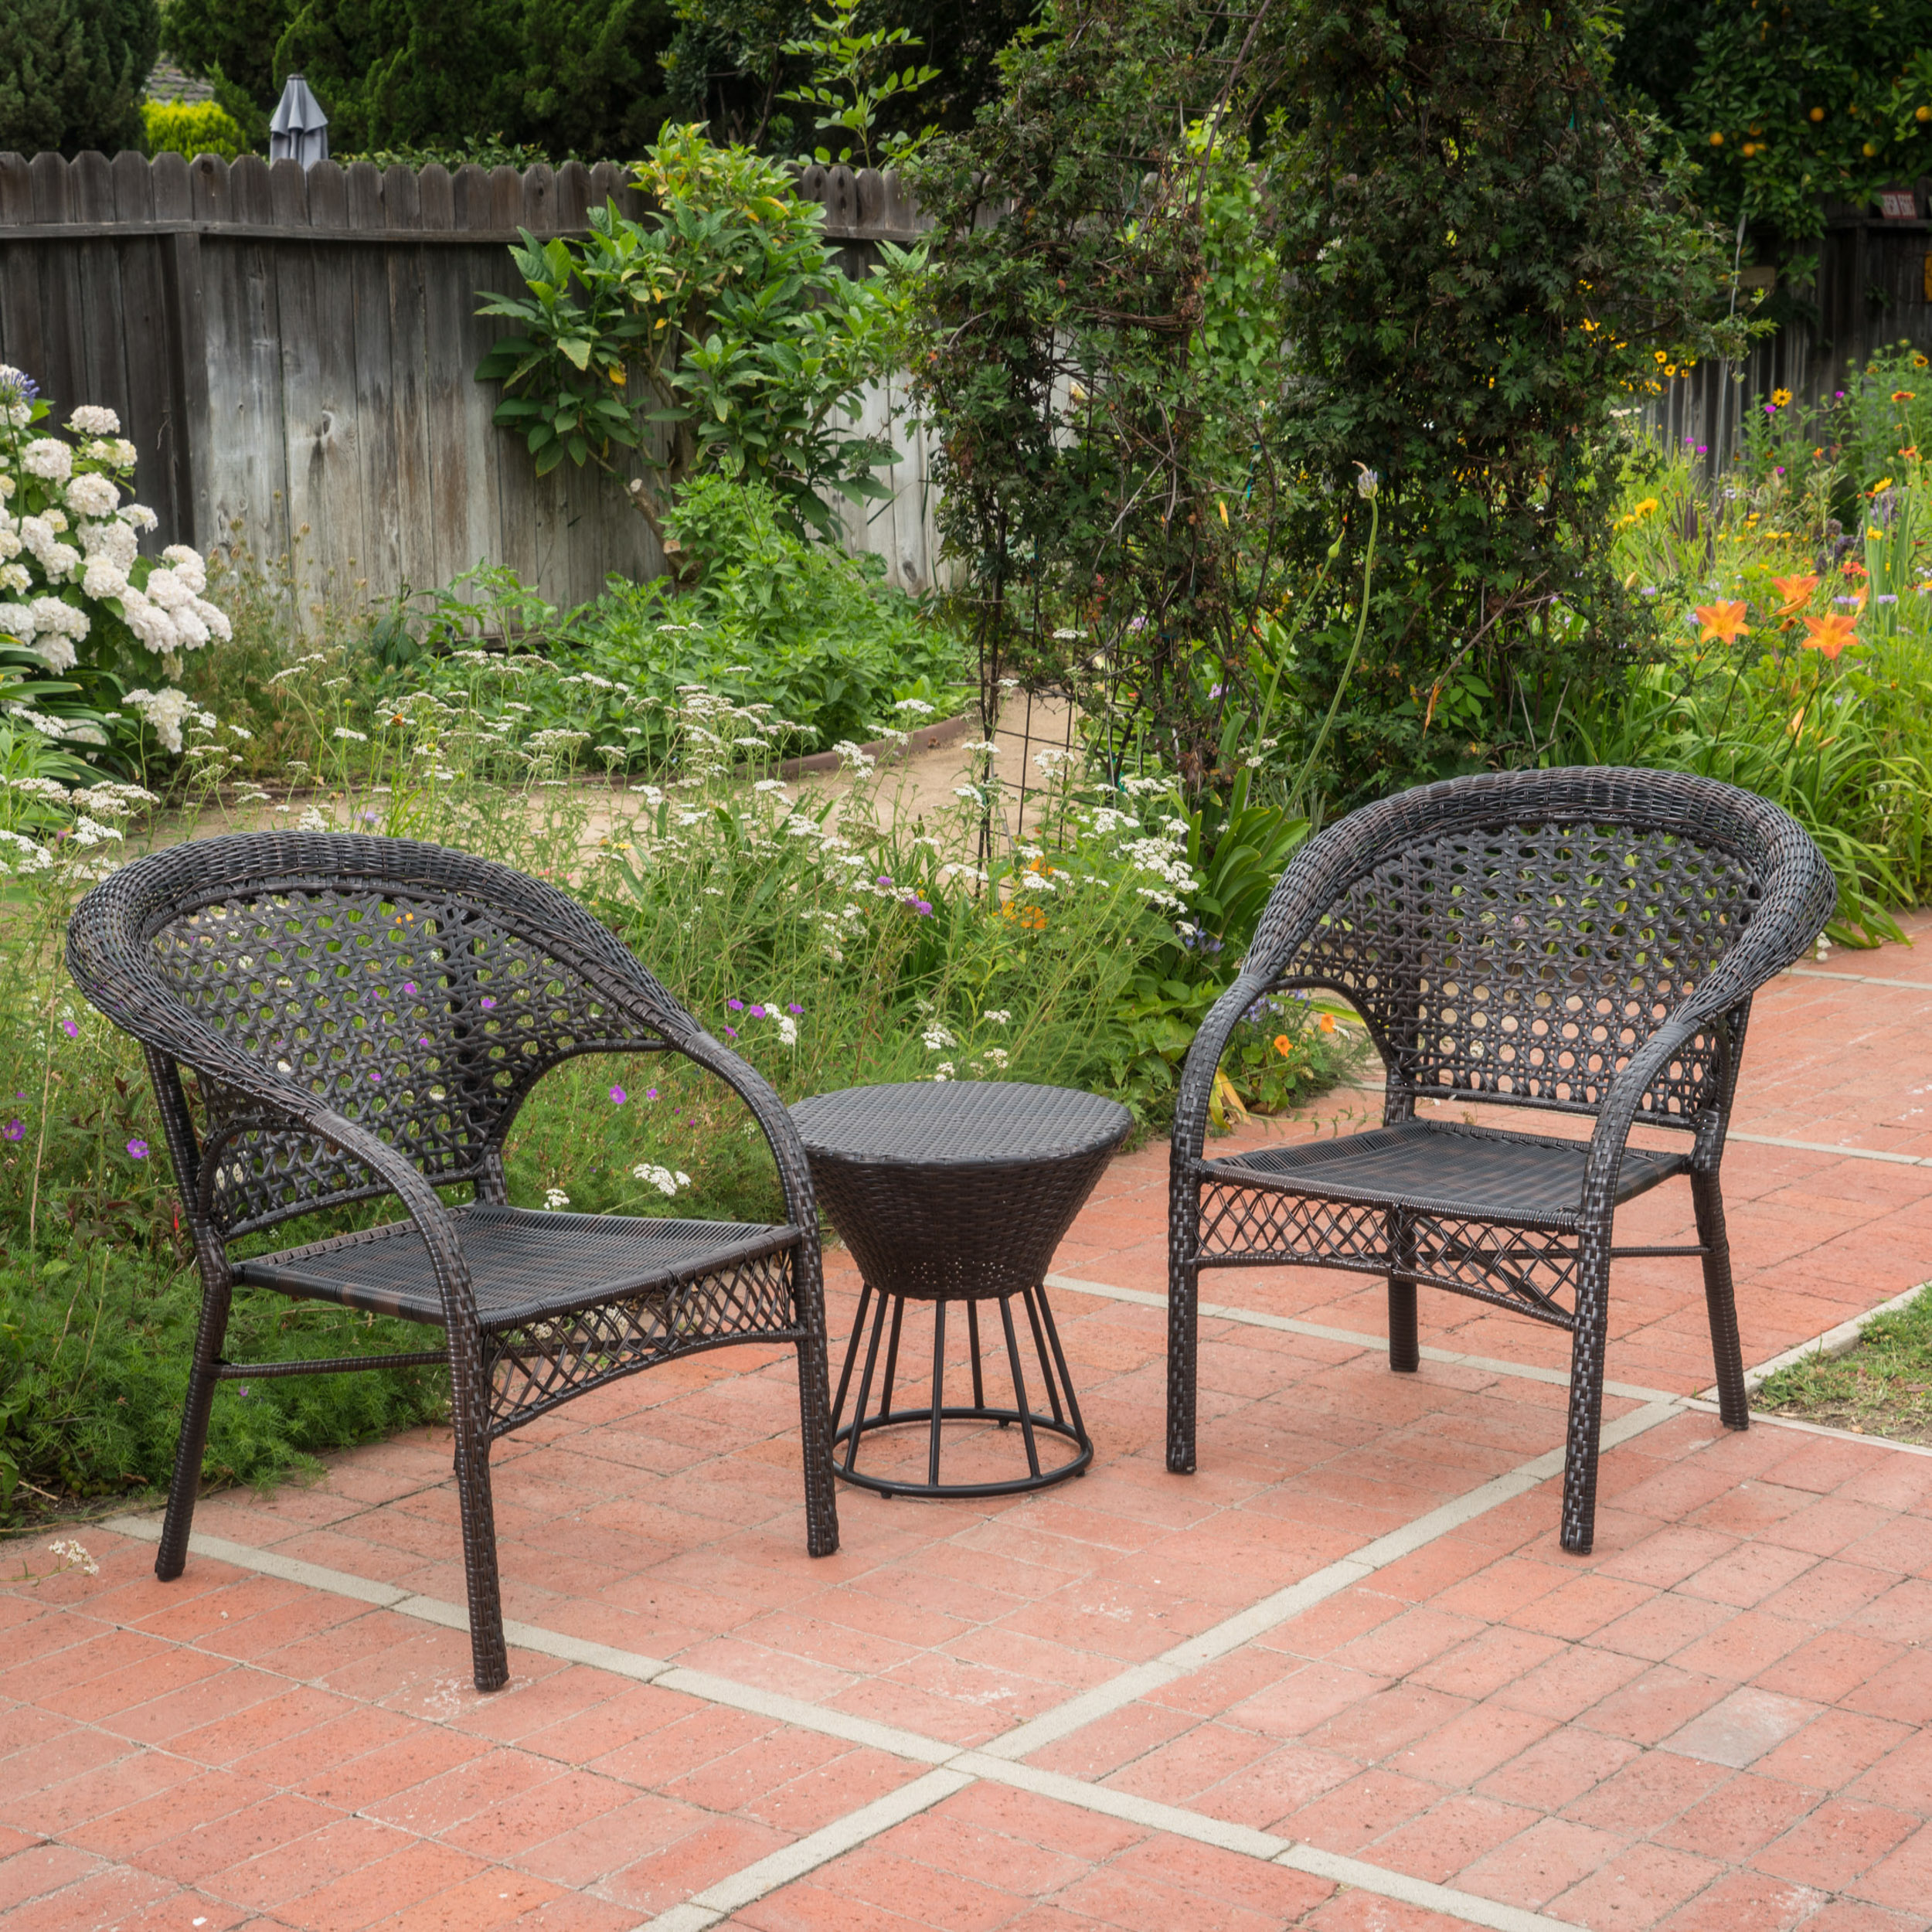 Bella Outdoor 3 Piece Wicker Stacking Chair Chat Set, Multibrown